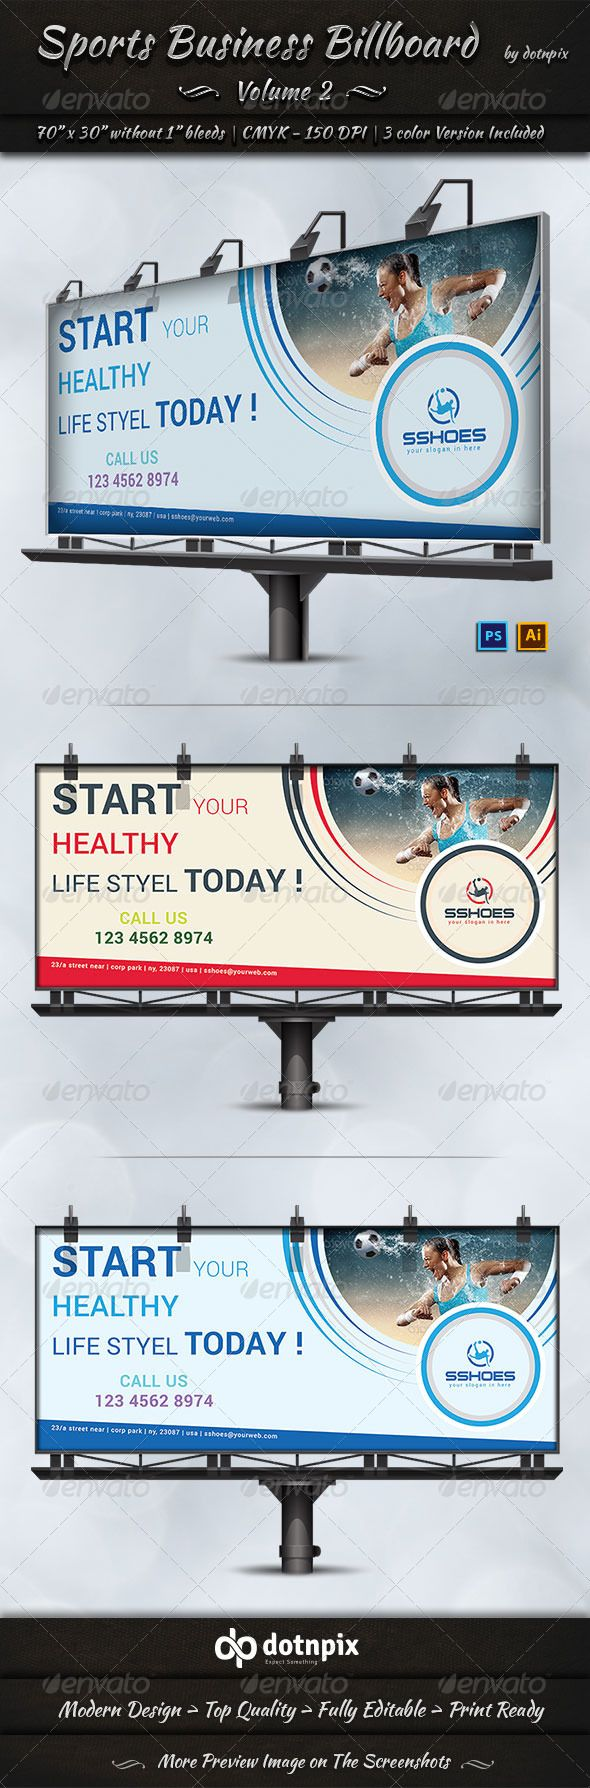 Sports Business Billboard Template #design #ads Download: http://graphicriver.net/item/sports-business-billboard-volume-2/7783667?ref=ksioks